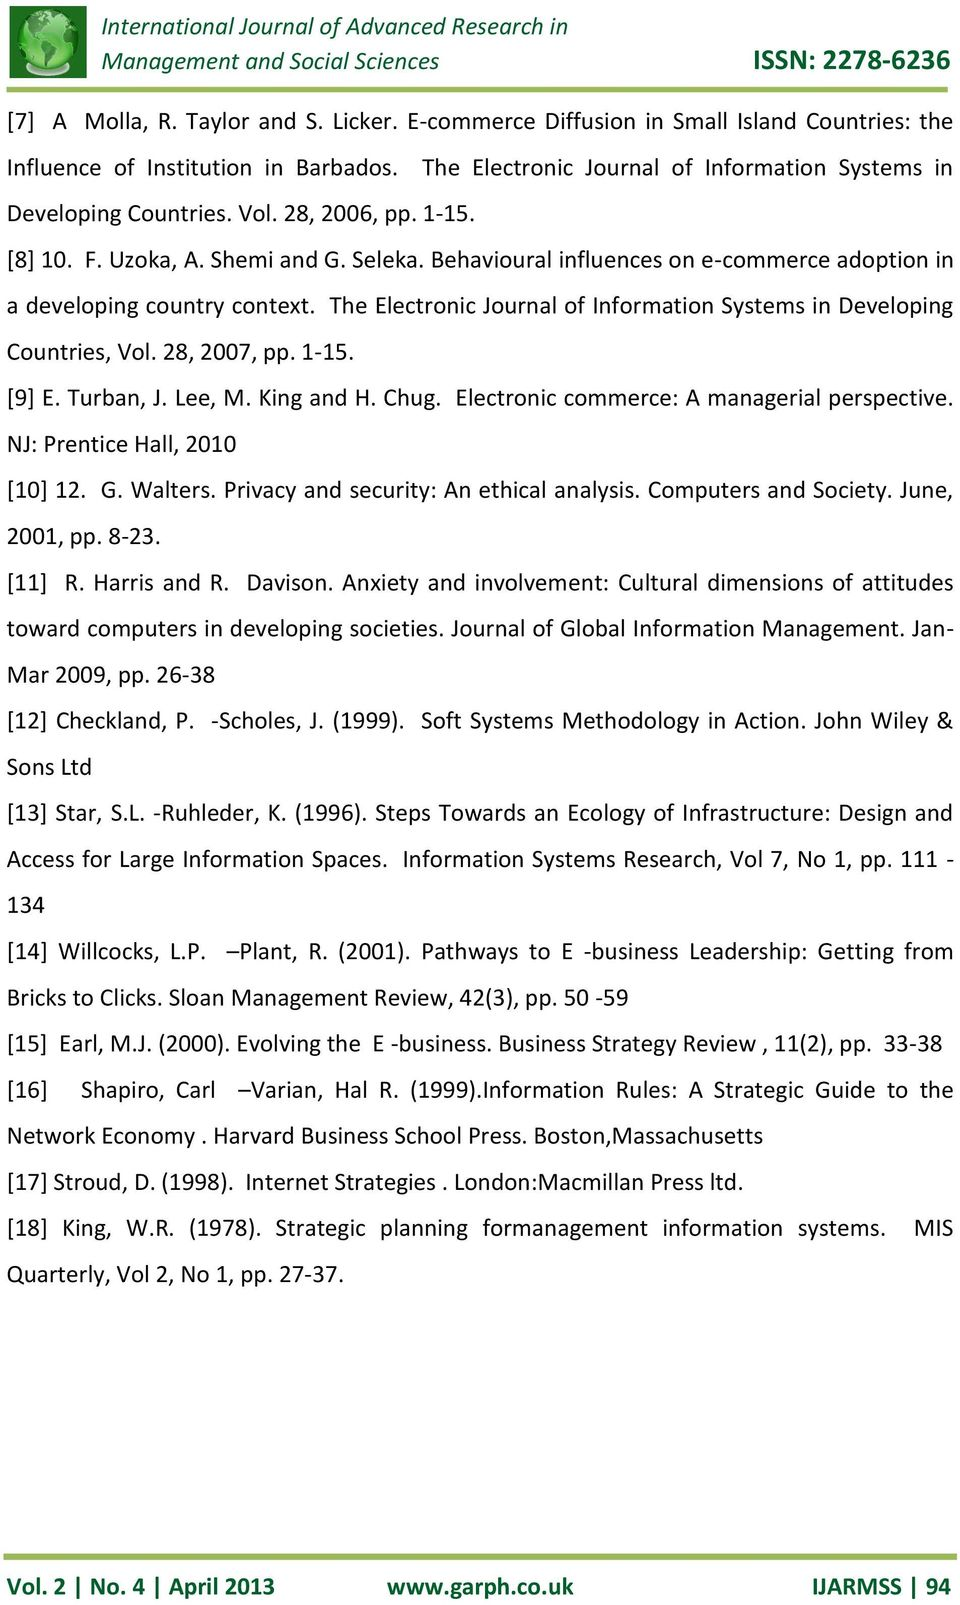 The Electronic Journal of Information Systems in Developing Countries, Vol. 28, 2007, pp. 1-15. [9] E. Turban, J. Lee, M. King and H. Chug. Electronic commerce: A managerial perspective.